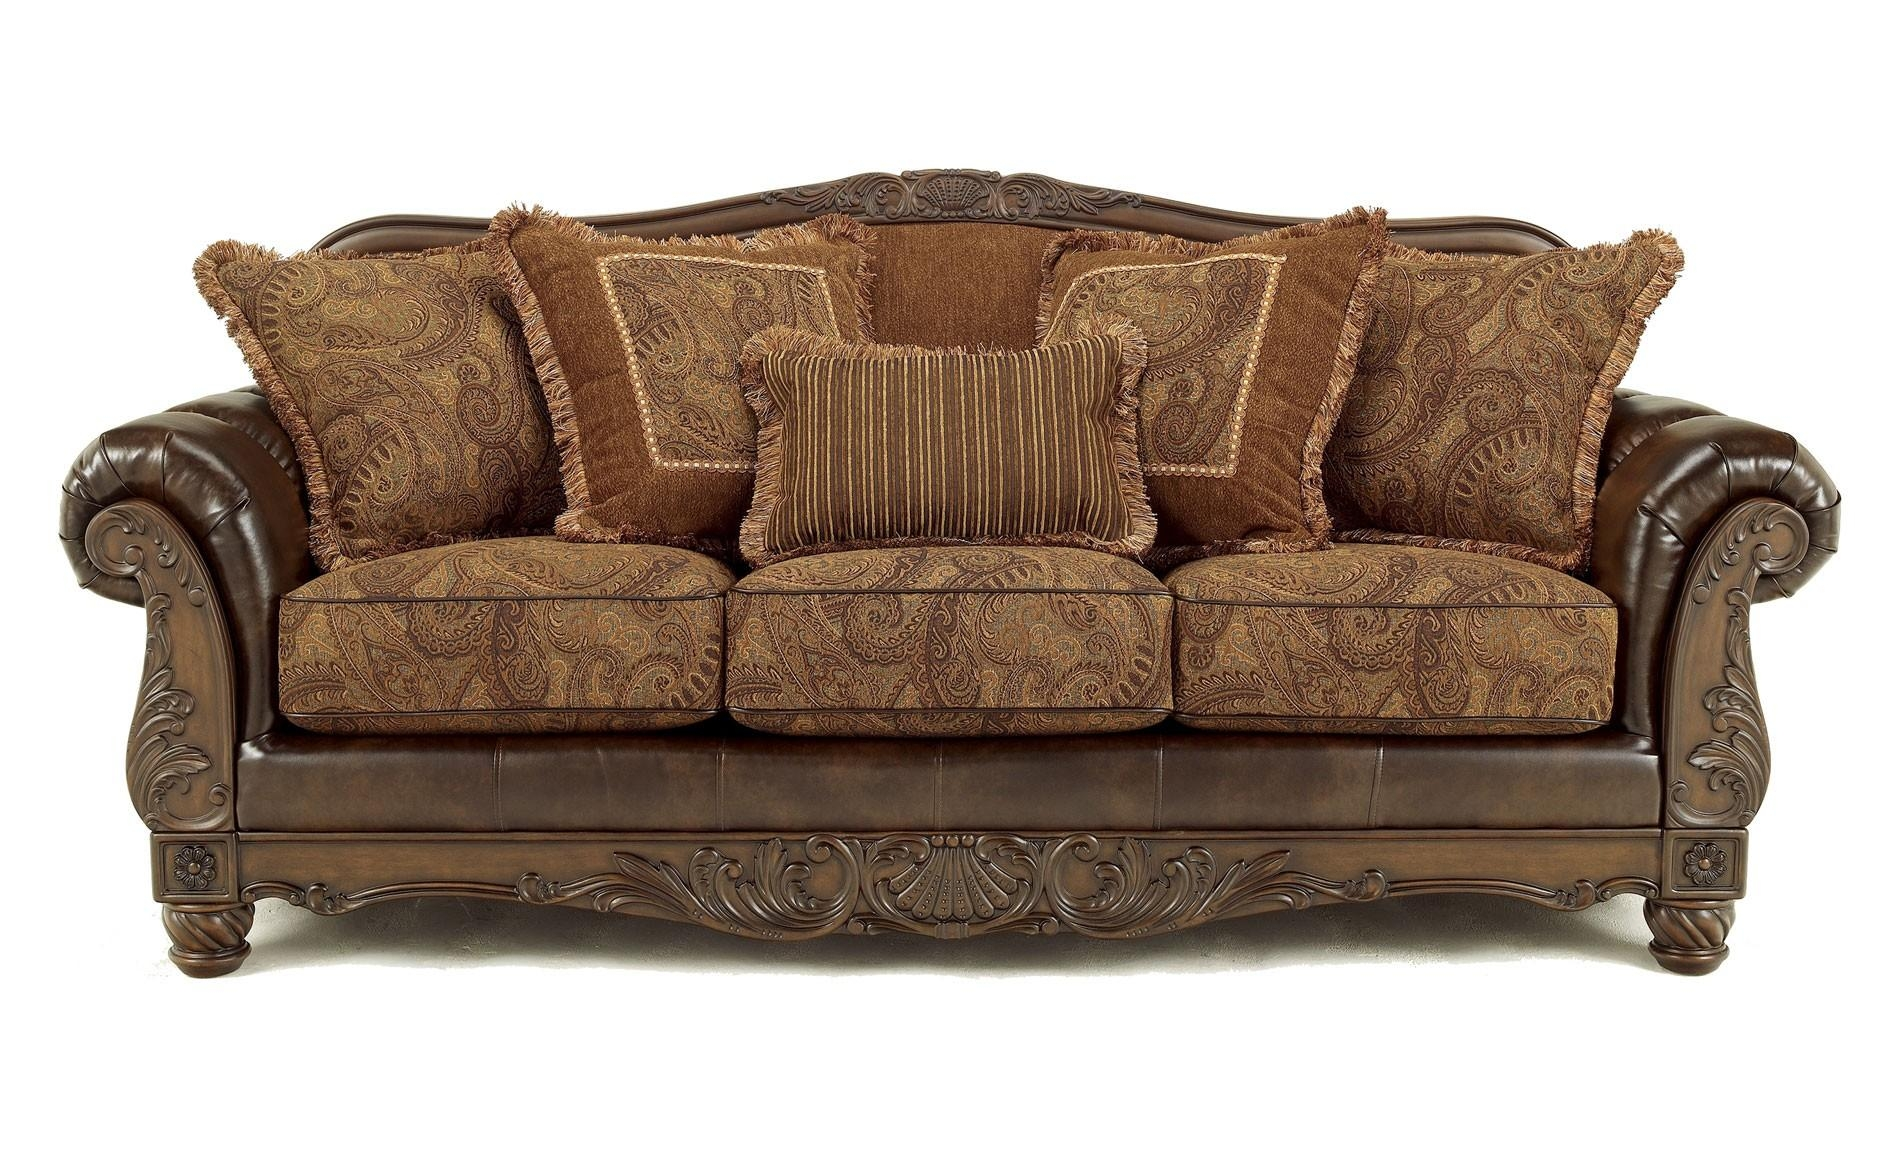 Old Fashioned Sofa Styles Know Your Antique Couch Sofa And Settee In Old Fashioned Sofas (Image 8 of 20)